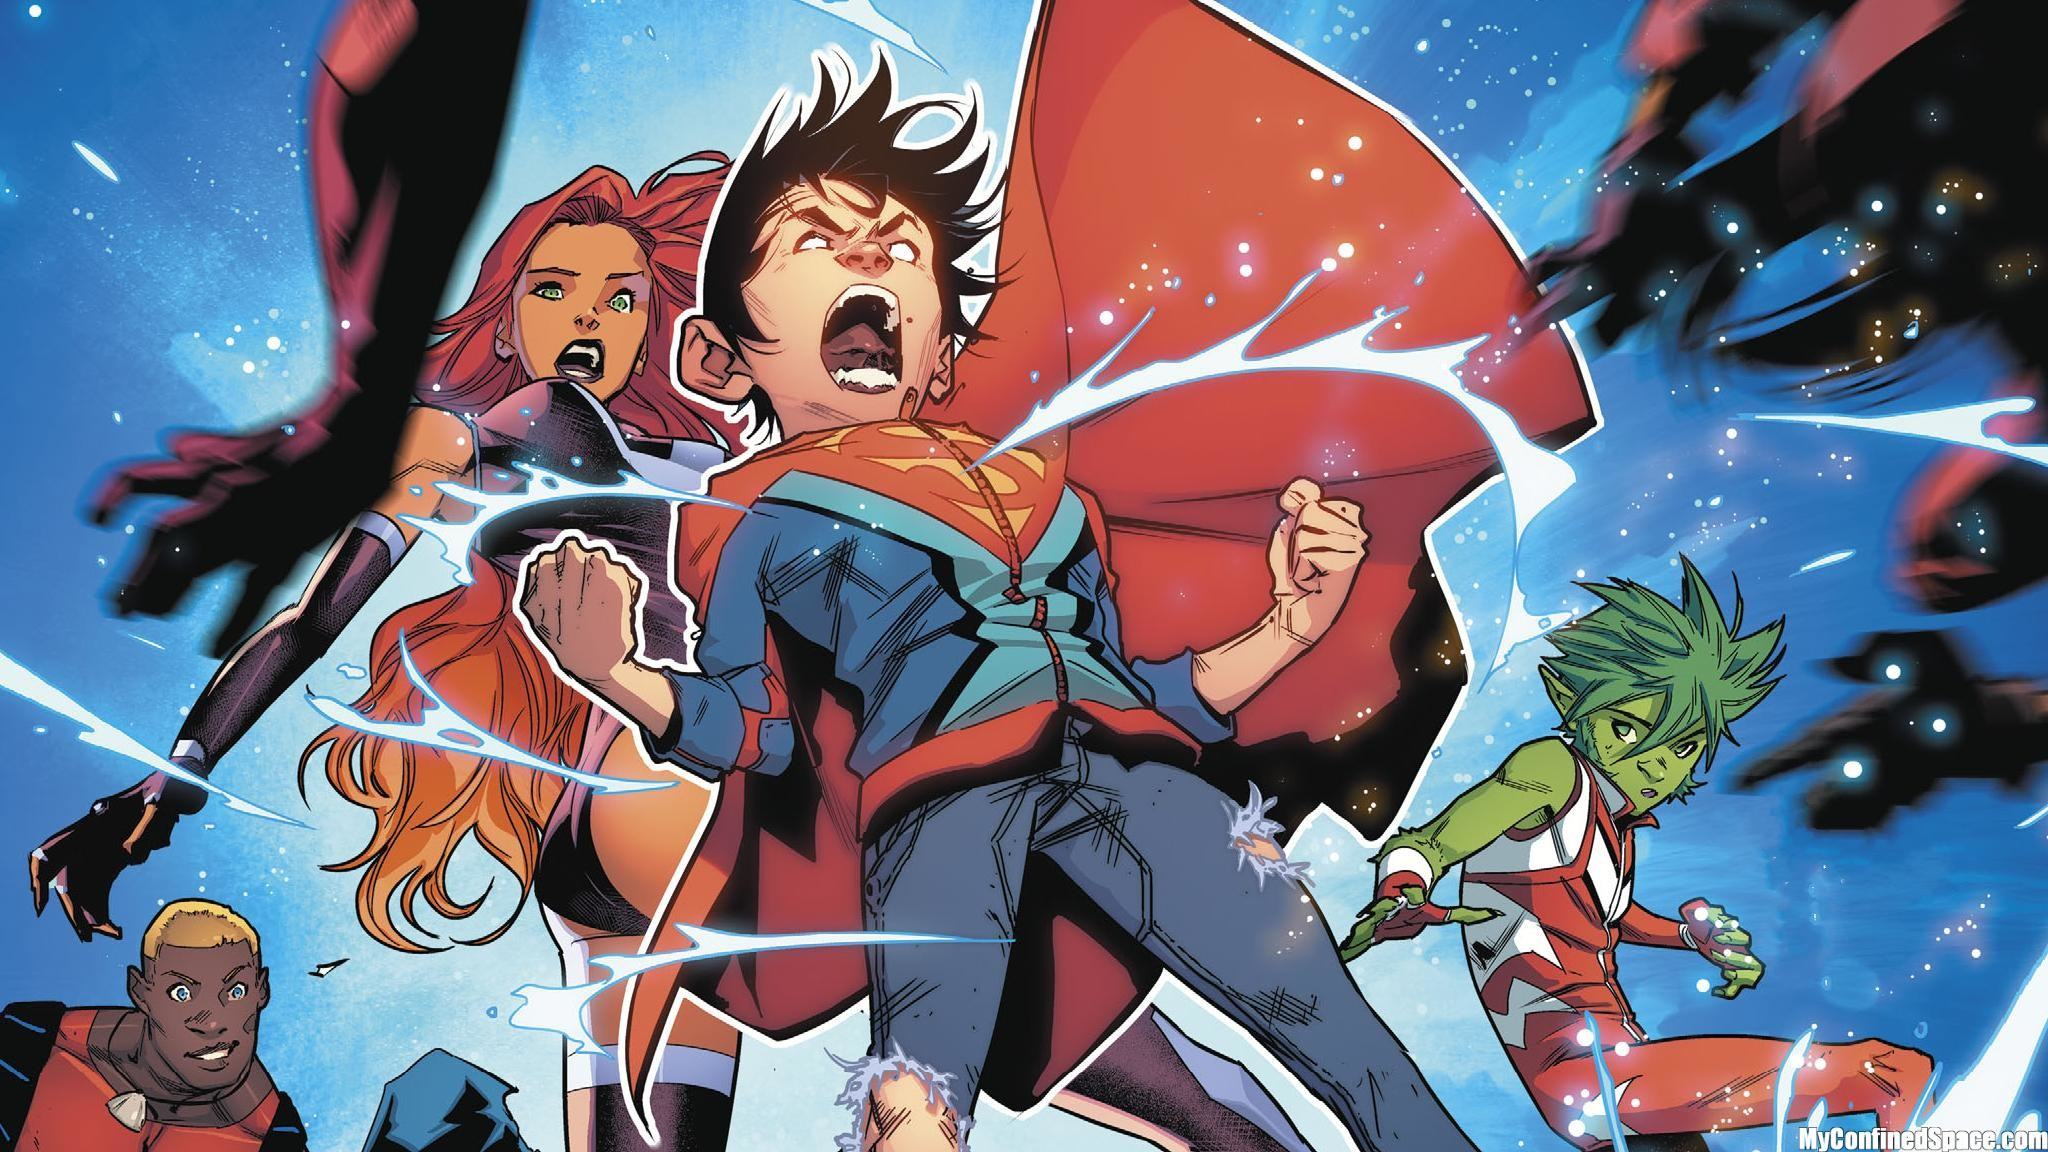 Res: 2048x1152, Superboy and Krypto by Artgerm Source · Superboy is angry MyConfinedSpace  Source · Superboy Wallpaper Wallpapers Browse